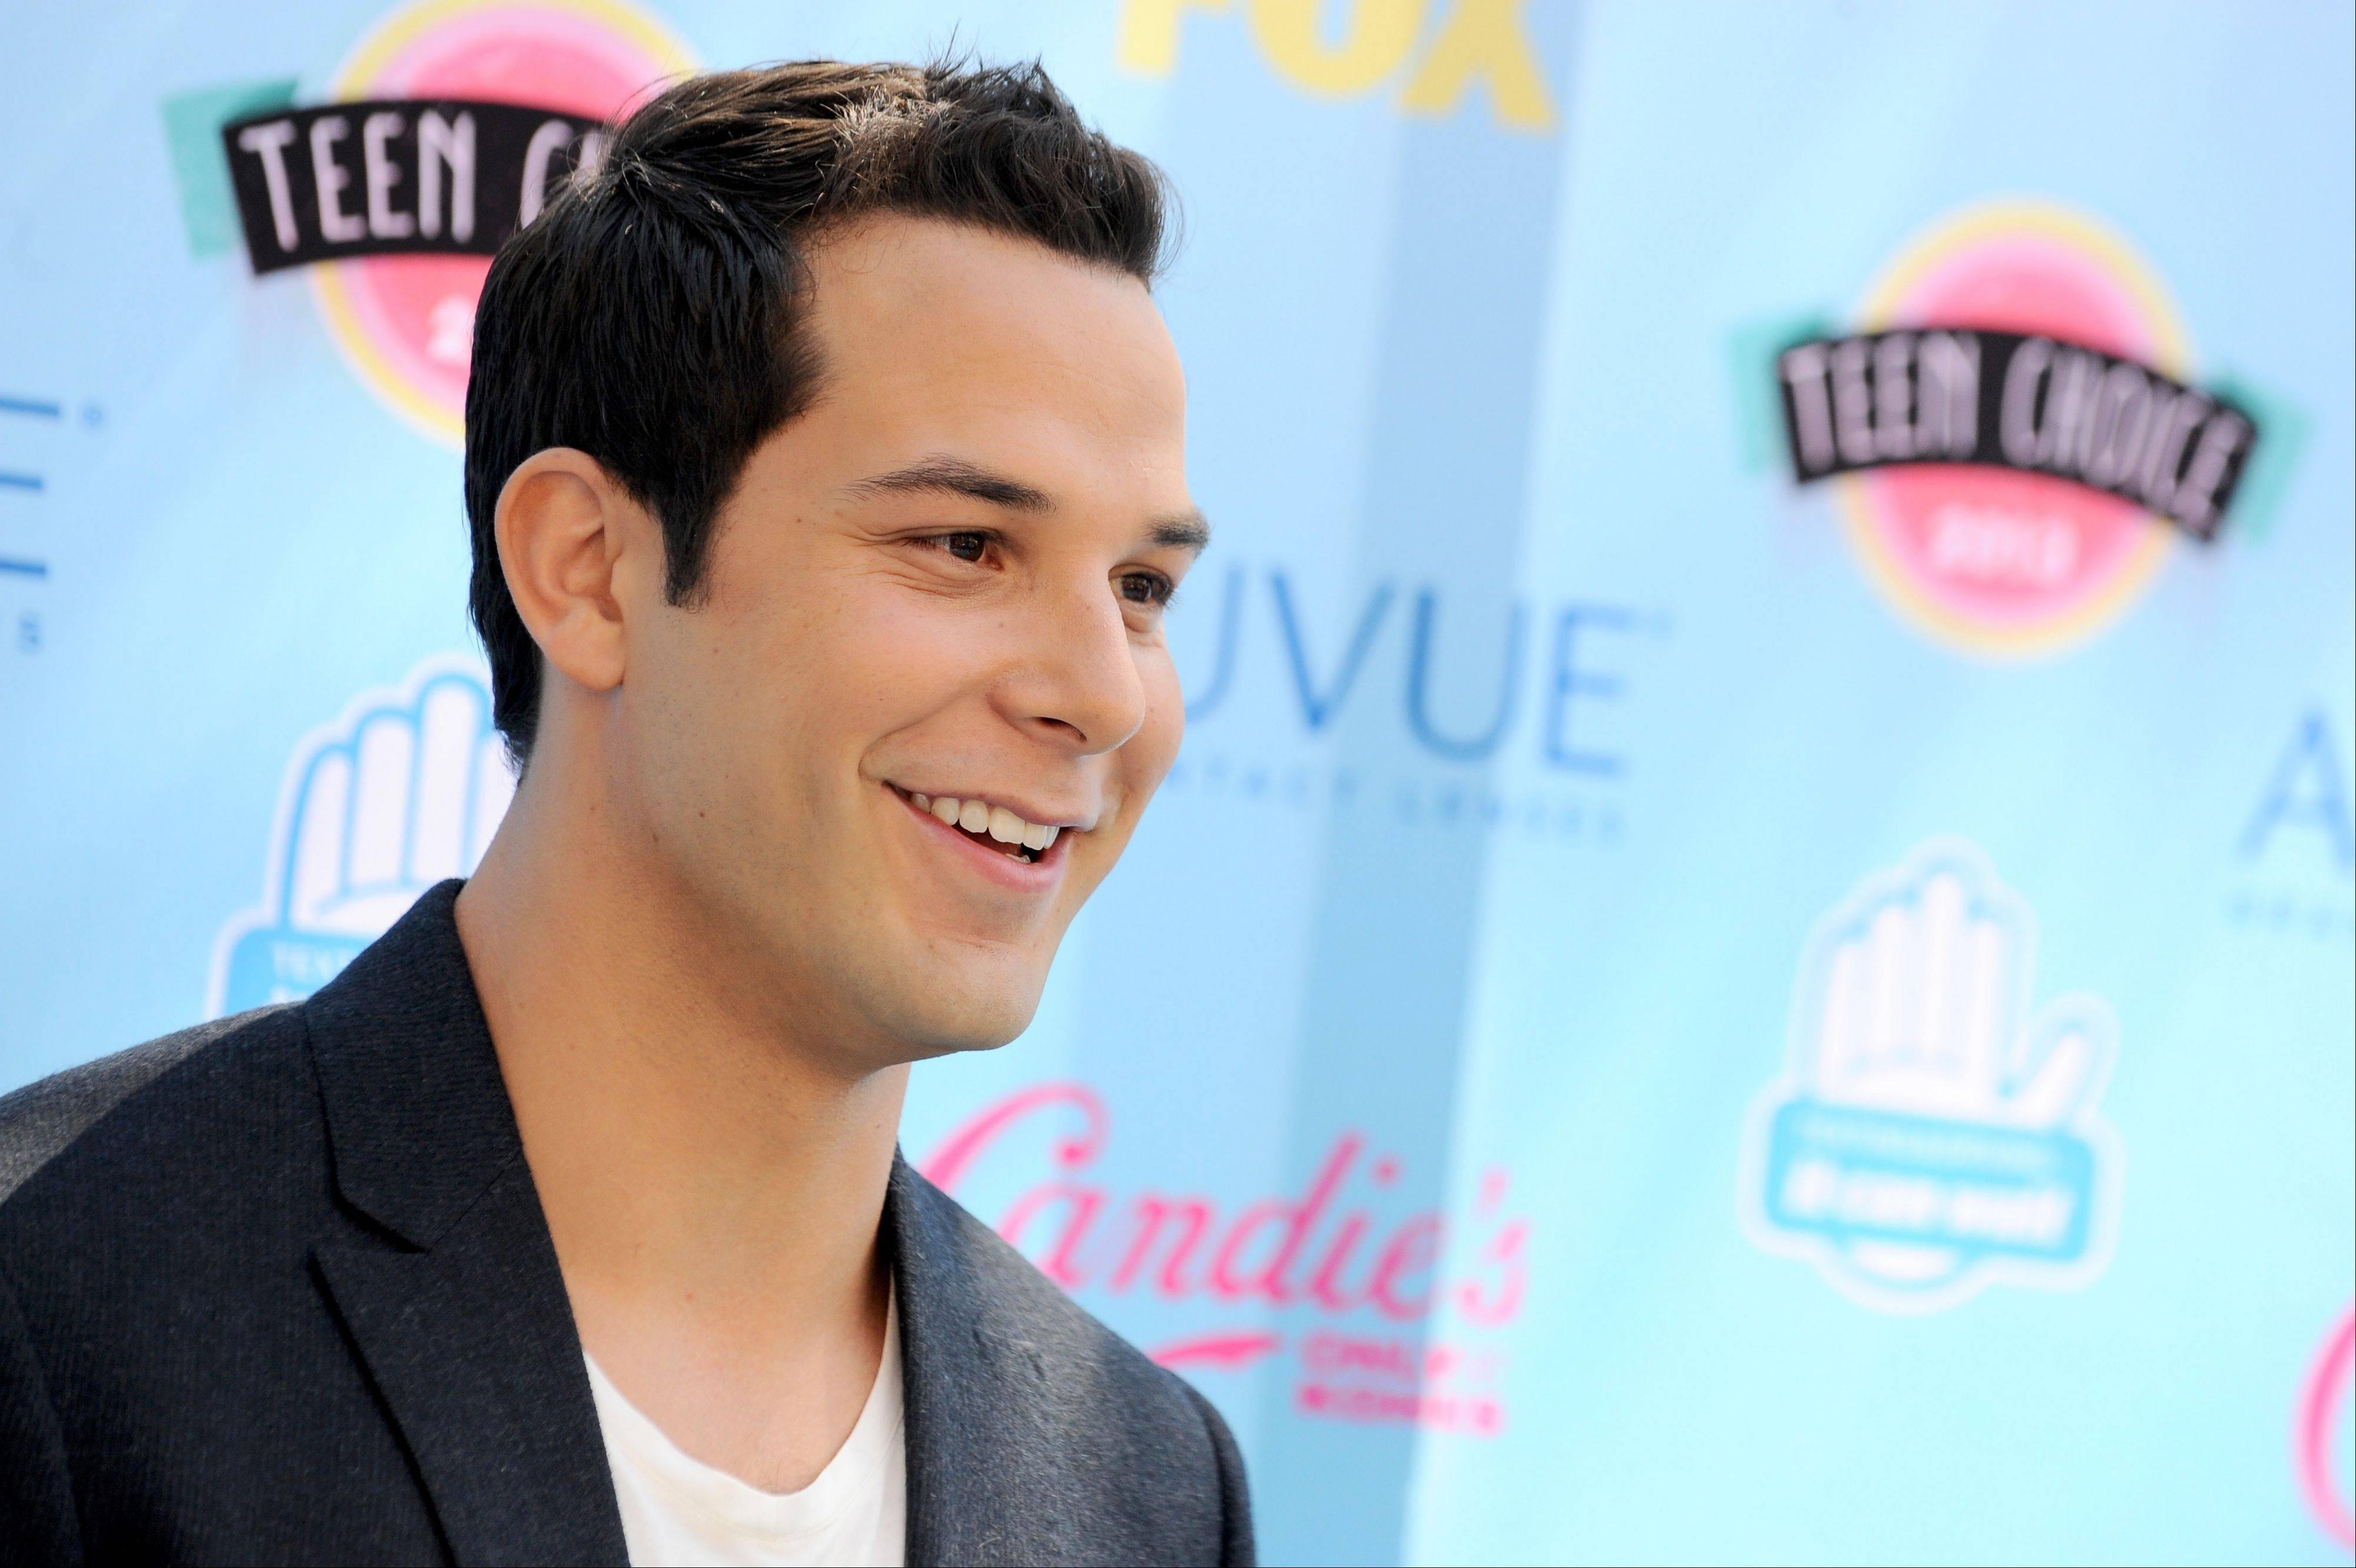 """Pitch Perfect"" star Skylar Astin arrives at the Teen Choice Awards at the Gibson Amphitheater on Sunday in Los Angeles."